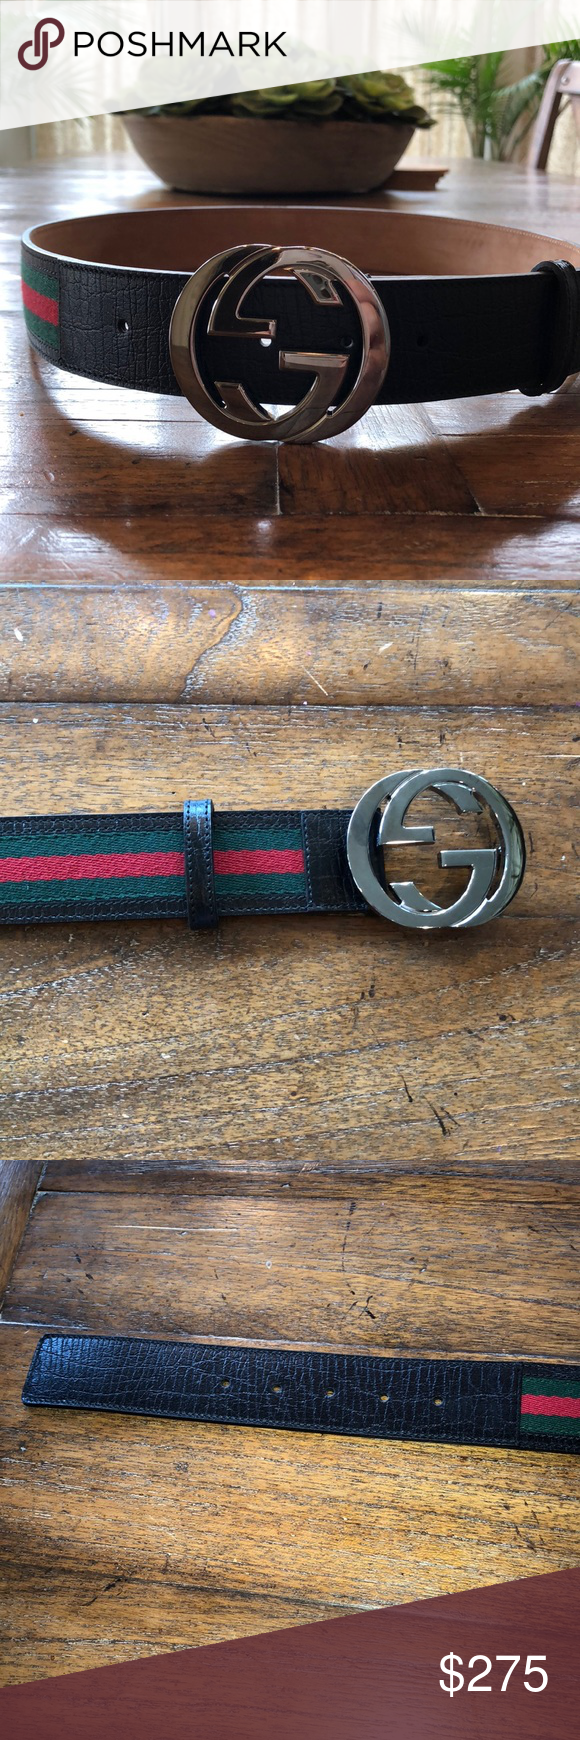 5c8b7524fe6 Spotted while shopping on Poshmark  Authentic GUCCI Signature Web Belt With  G buckle!  poshmark  fashion  shopping  style  Gucci  Other